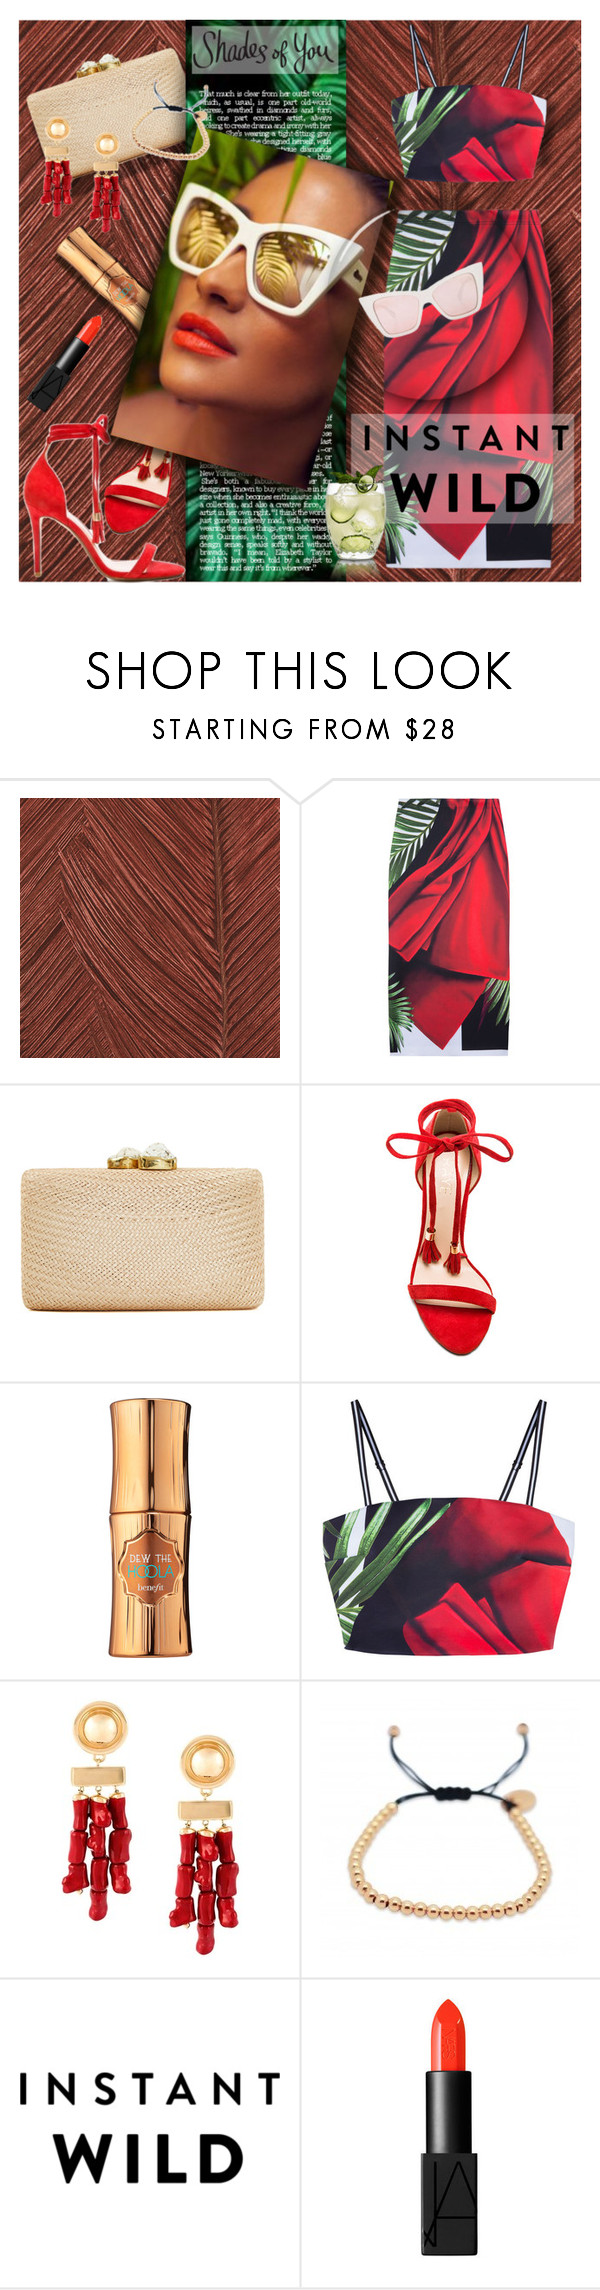 """summer soiree"" by lilith1521 ❤ liked on Polyvore featuring ARTE, Clover Canyon, Kayu, Raye, Benefit, Balmain and NARS Cosmetics"